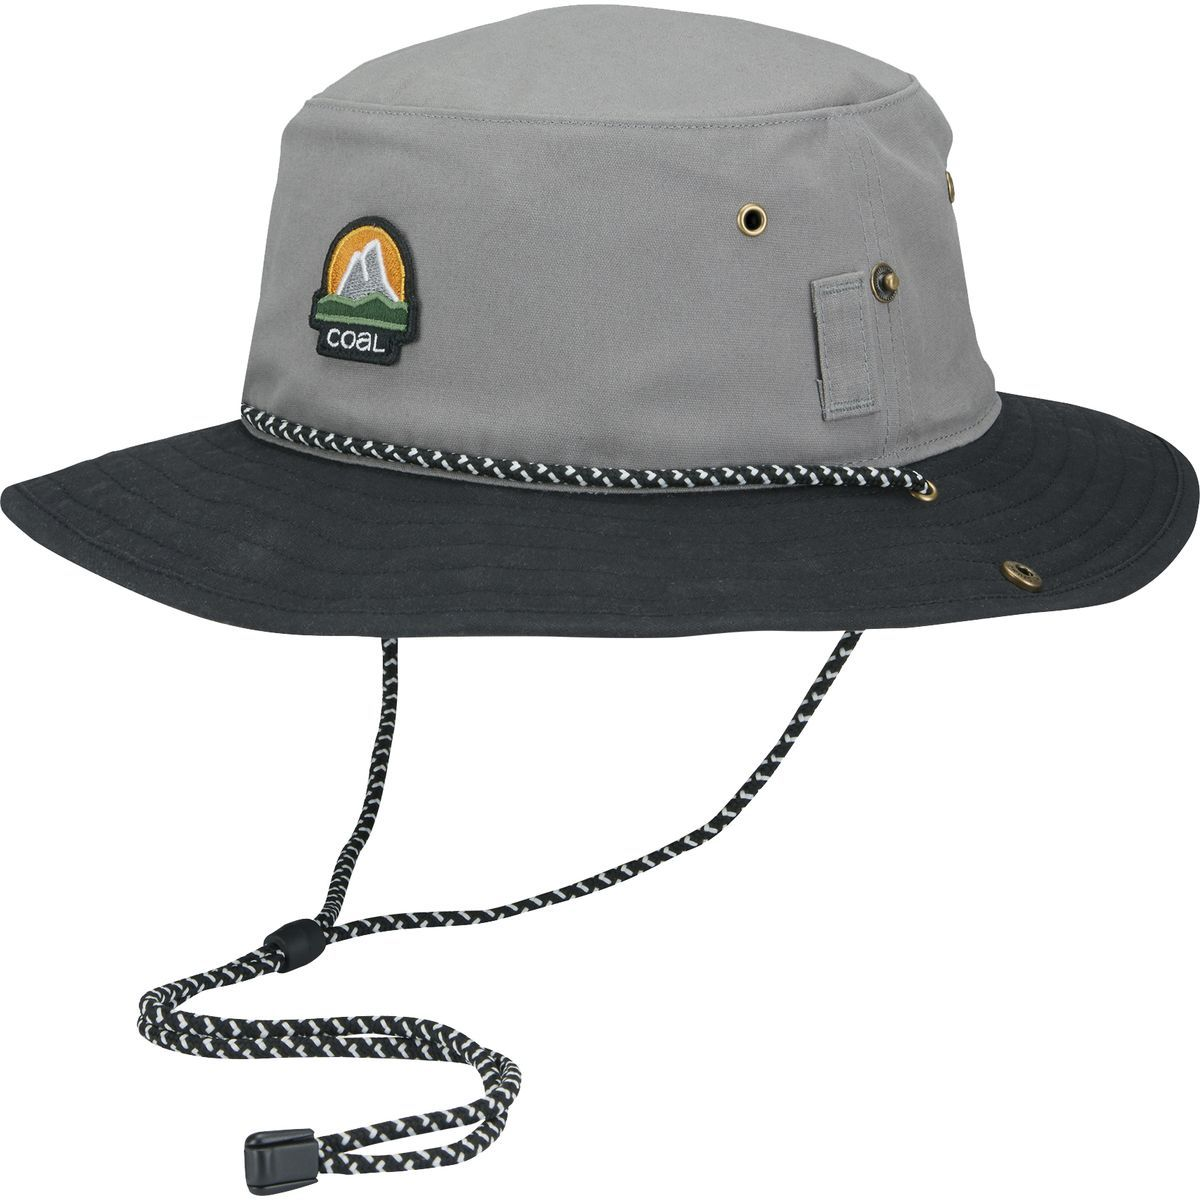 Coal Headwear Seymour Hat